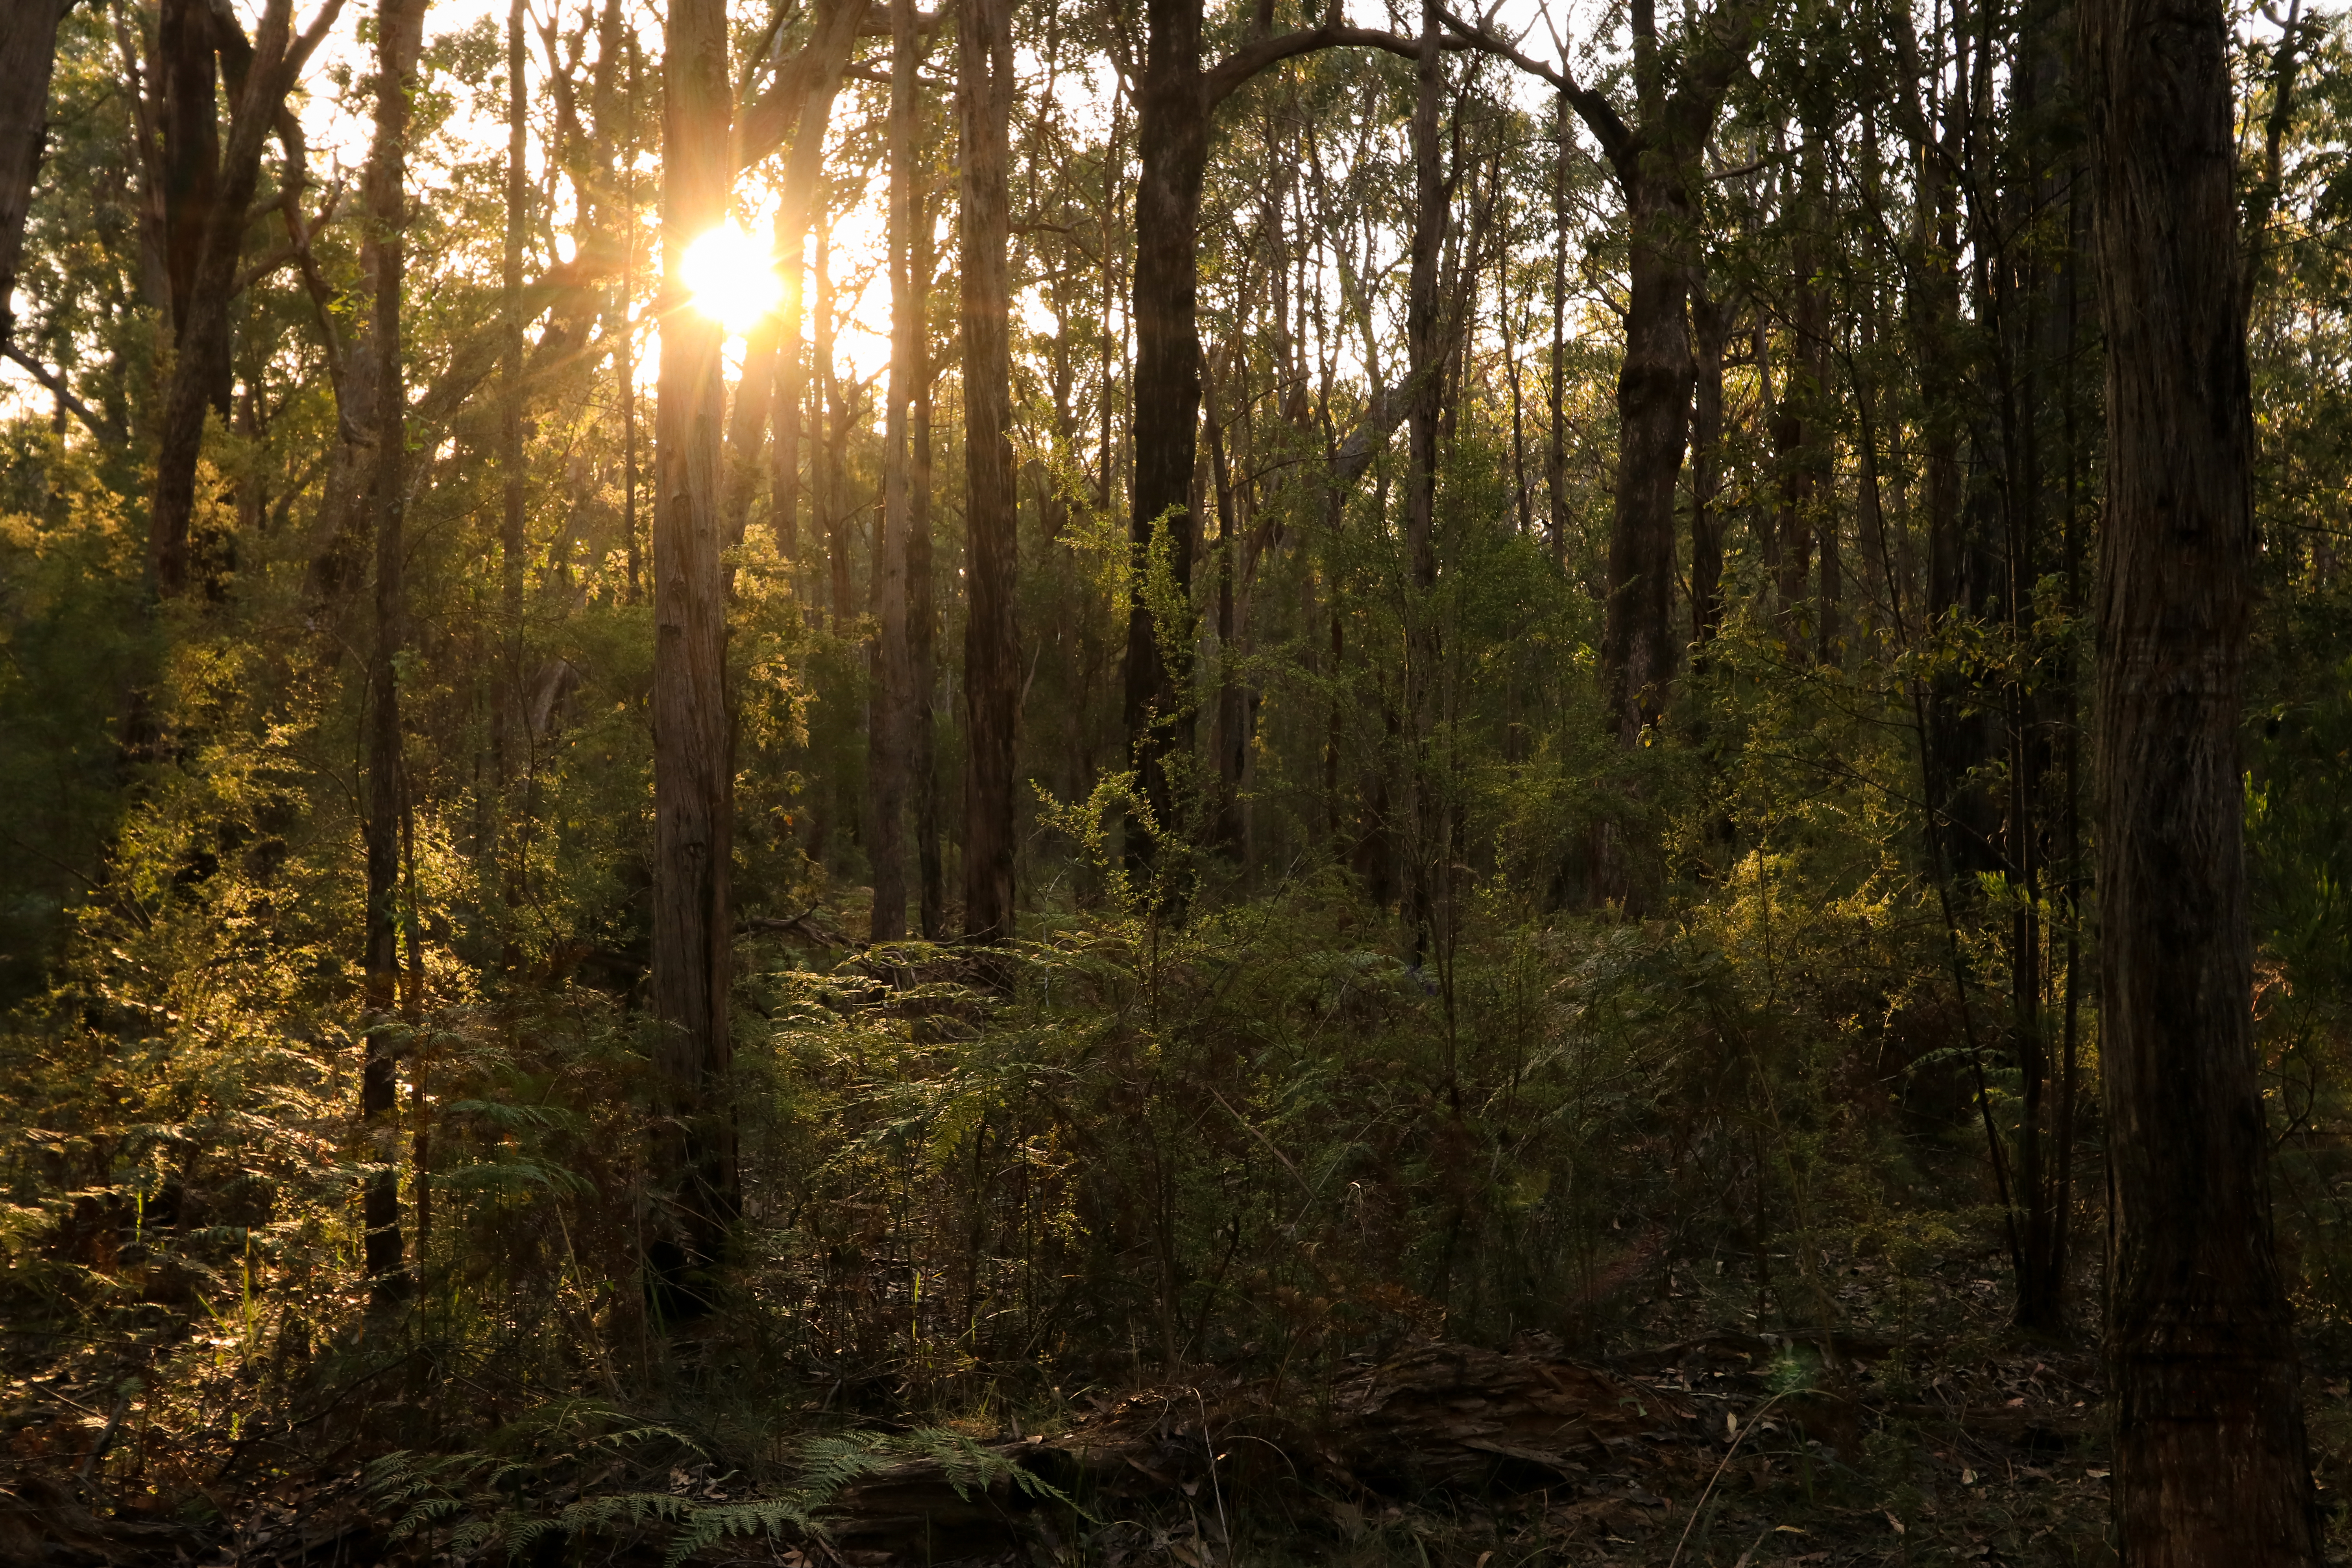 Final golden light glows in the young Cobboboonee forest.